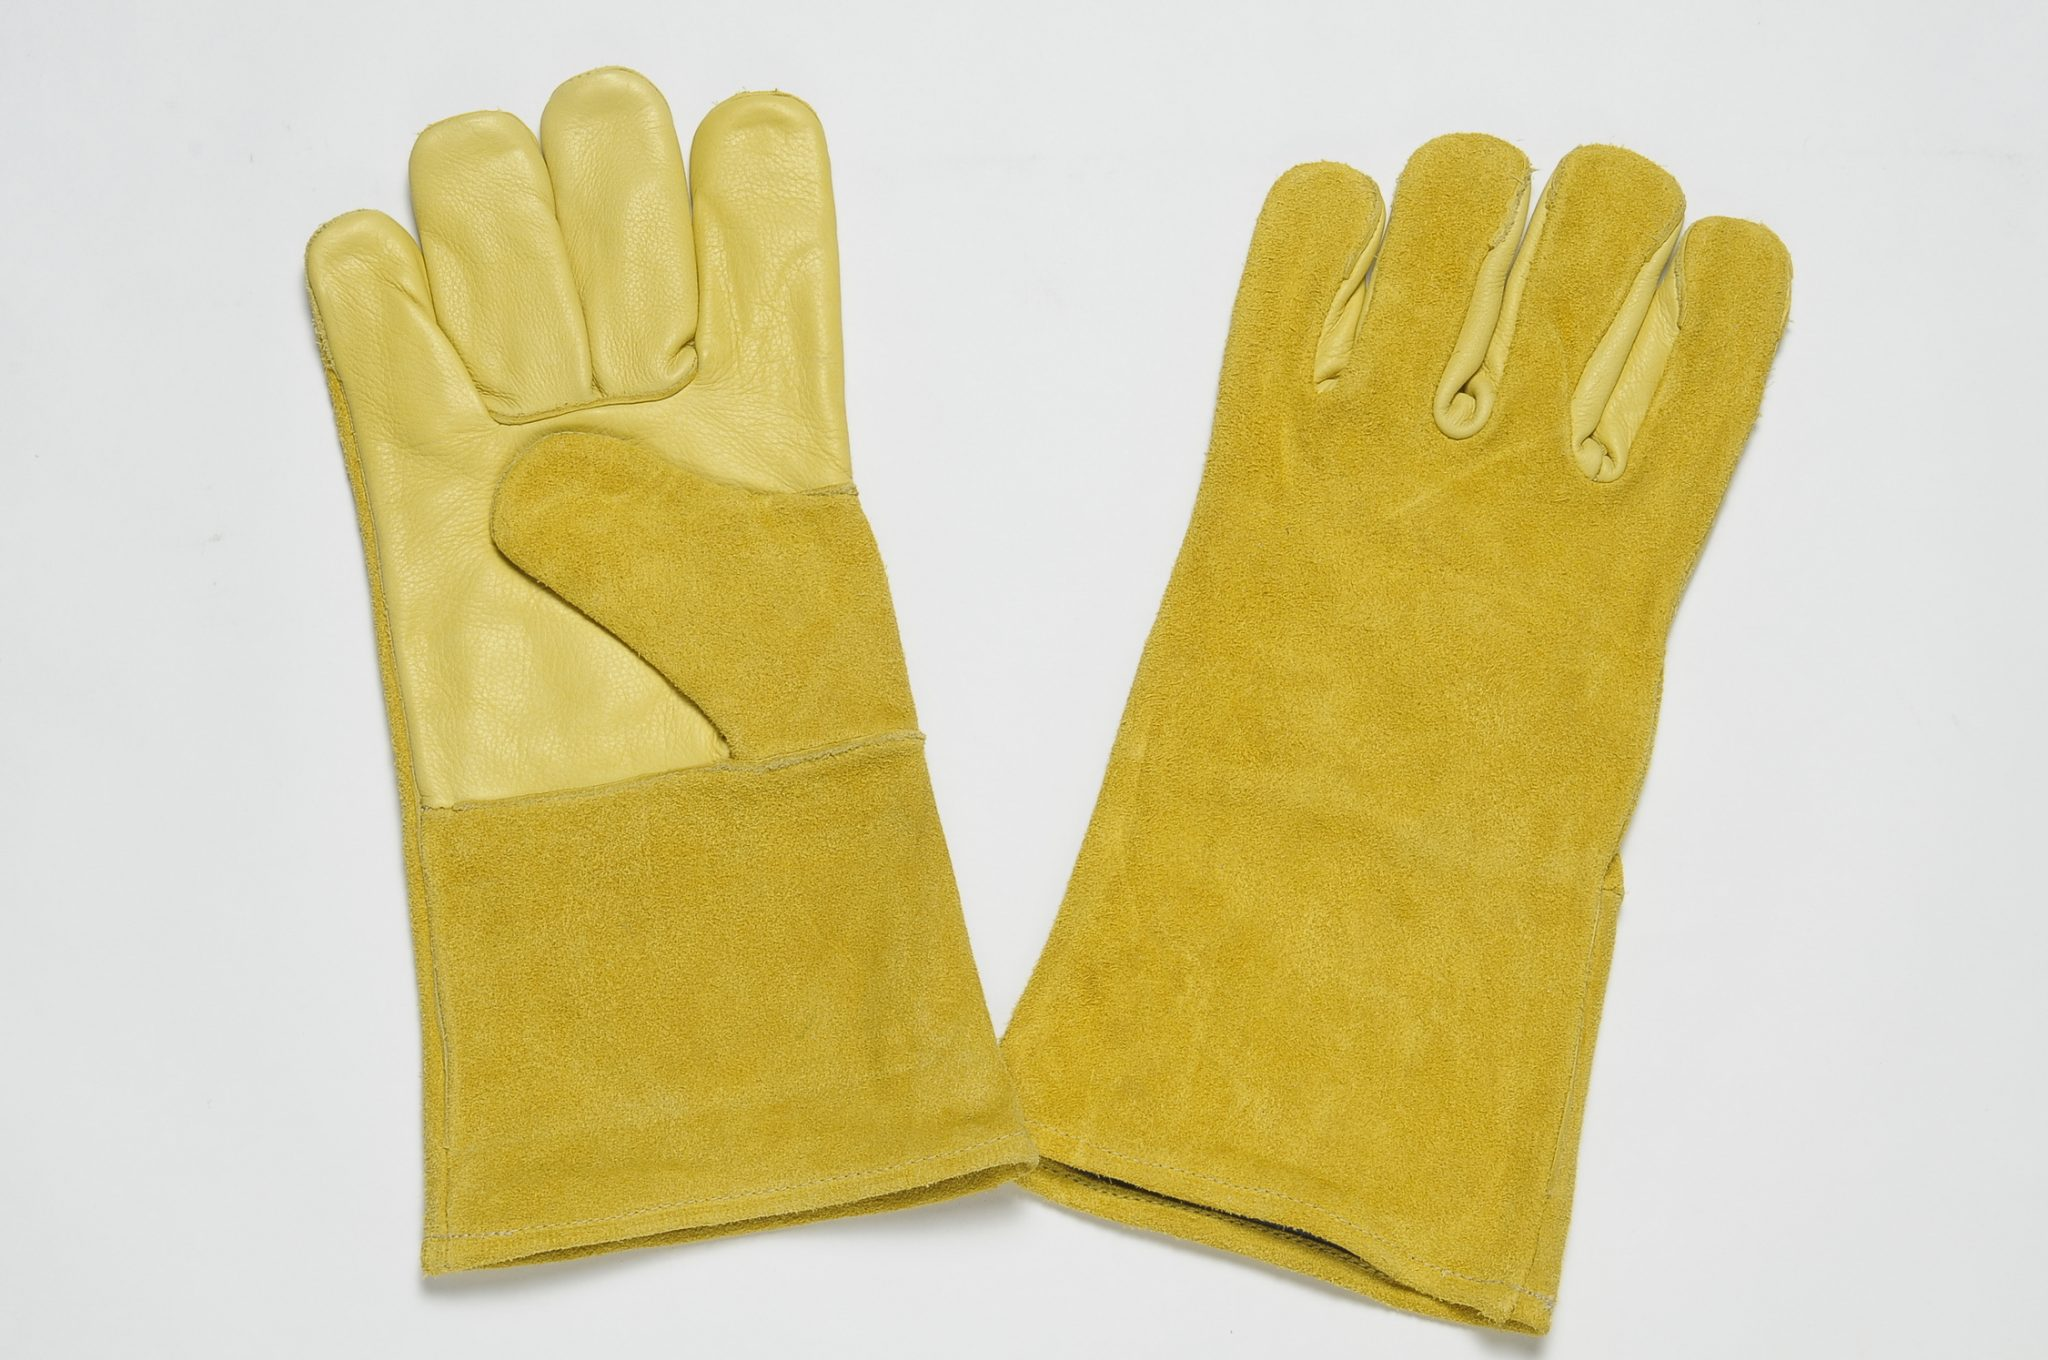 YELLOW ALL LEATHER GLOVES. PALM OF YELLOW GRAIN LEATHER, BACK & CUFF OF YELLOW SPLIT LEATHER.